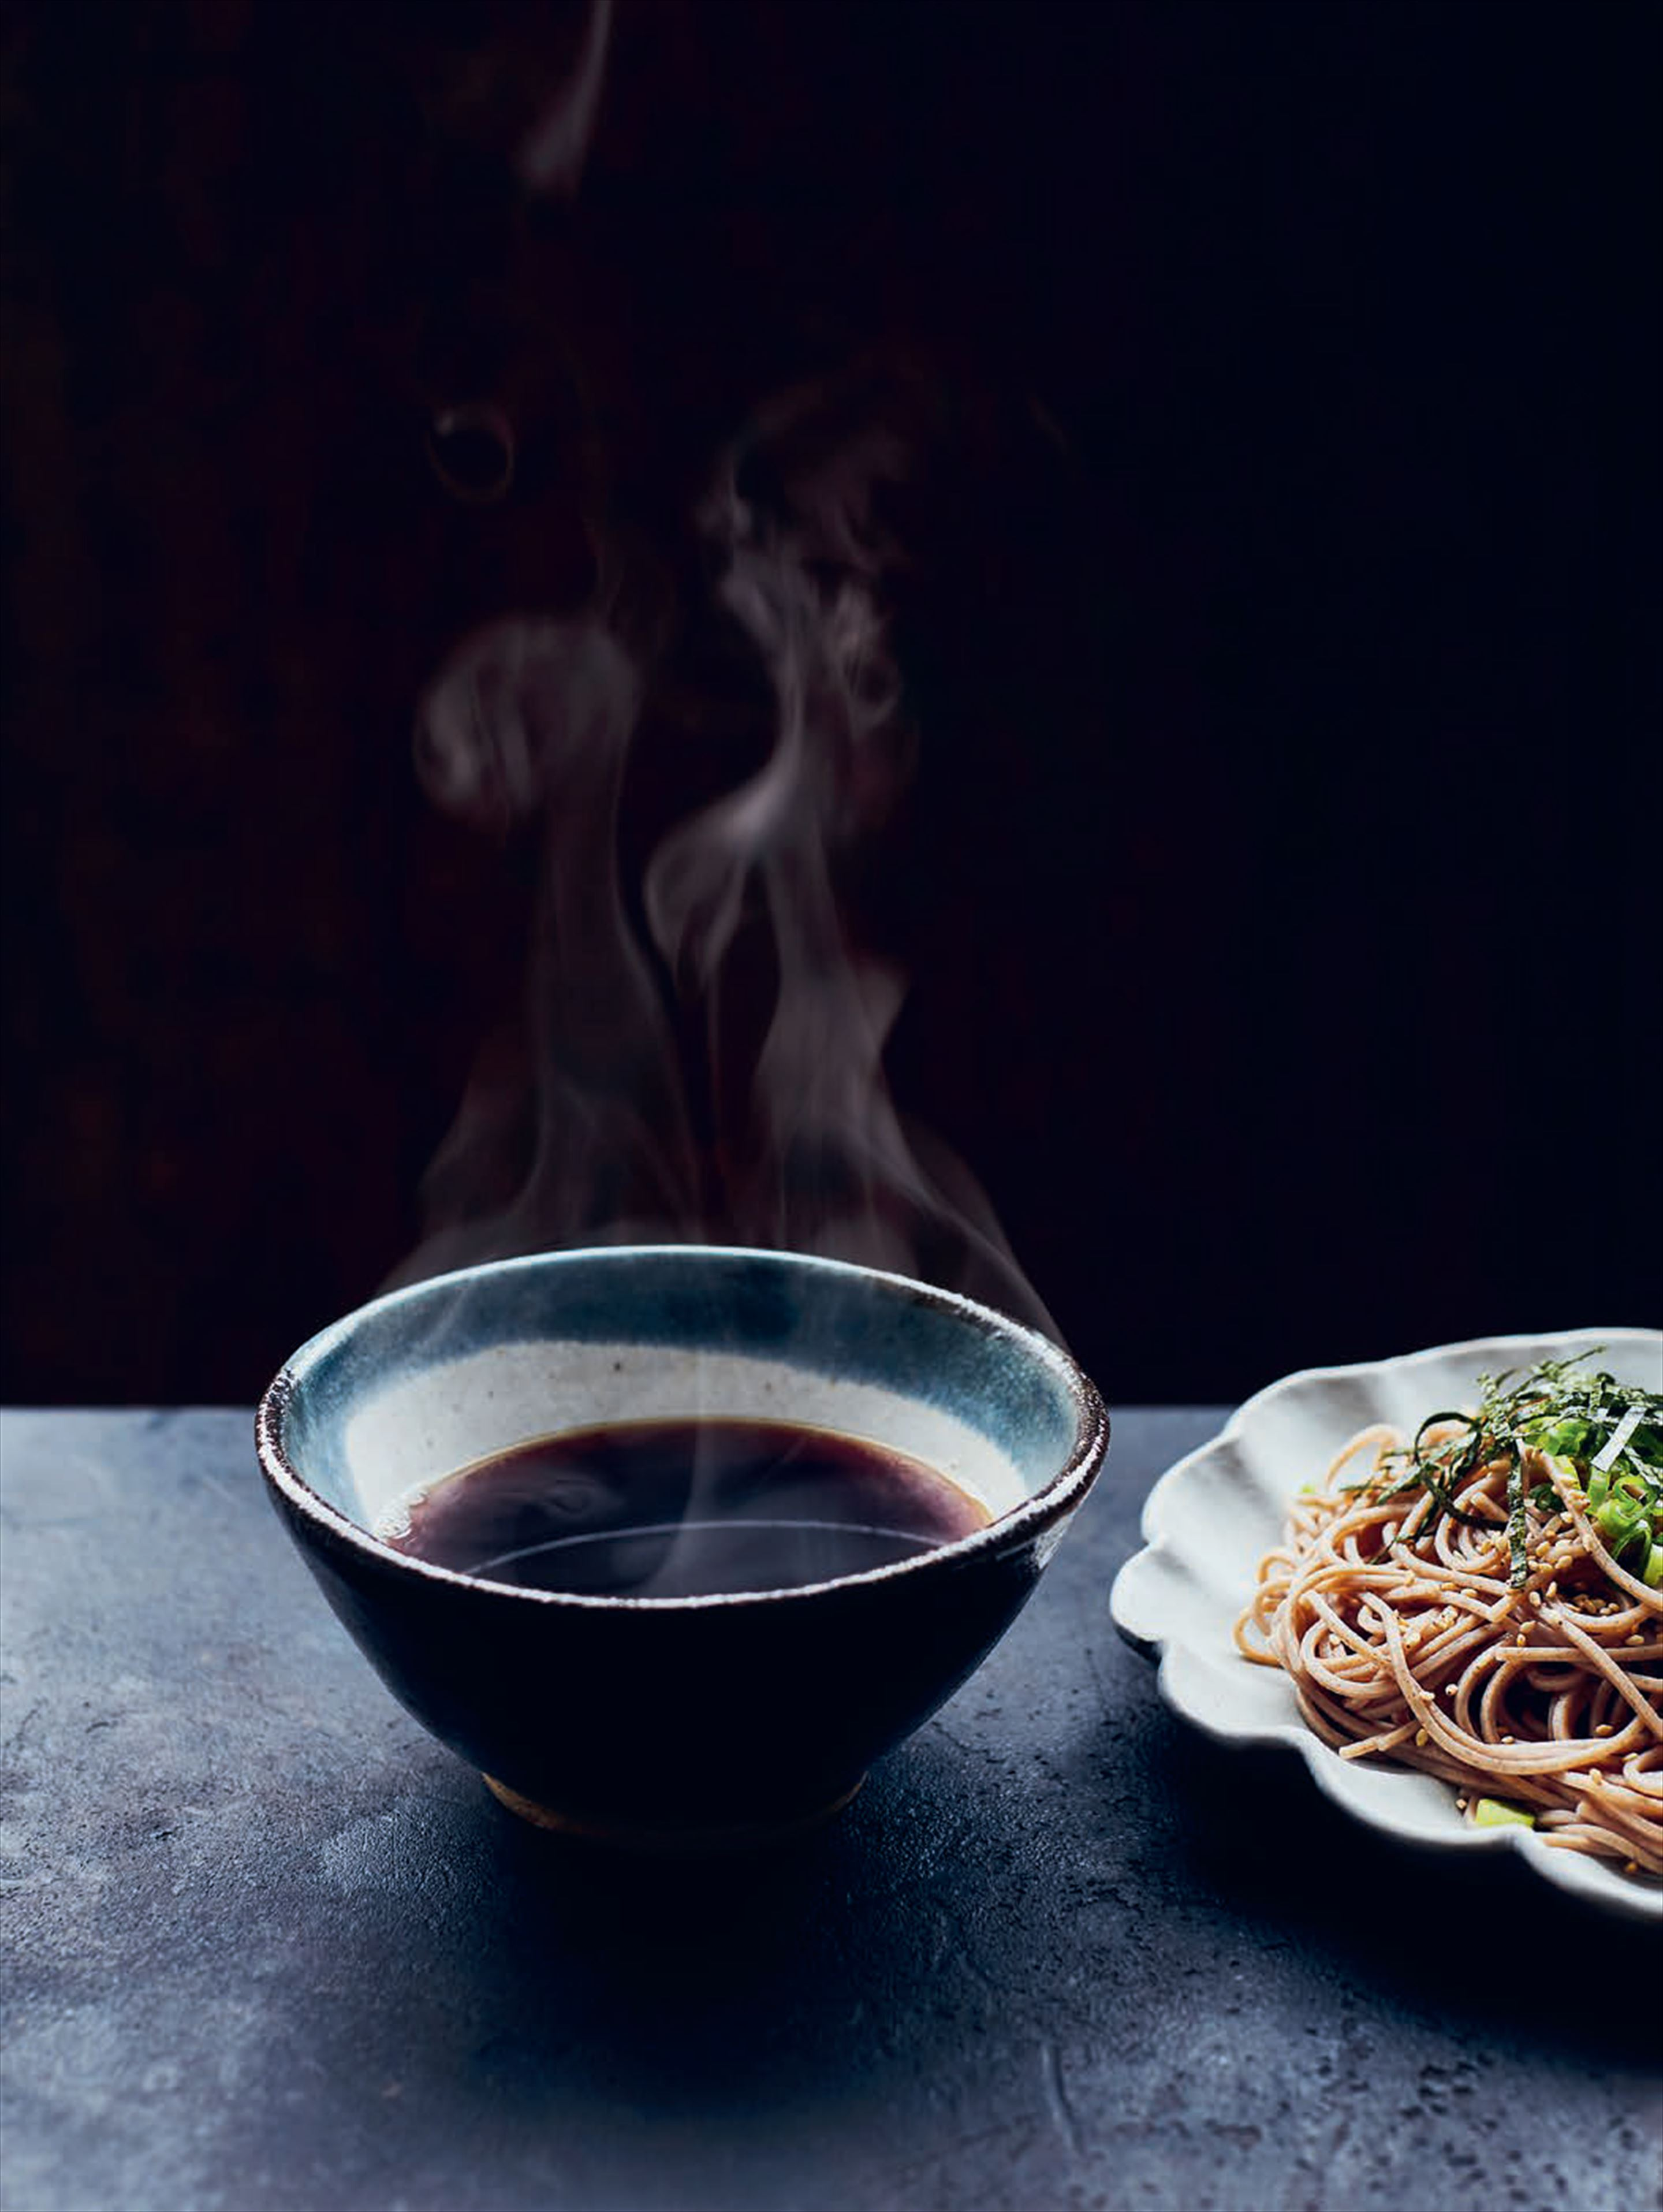 Cold udon or soba with hot dipping sauce